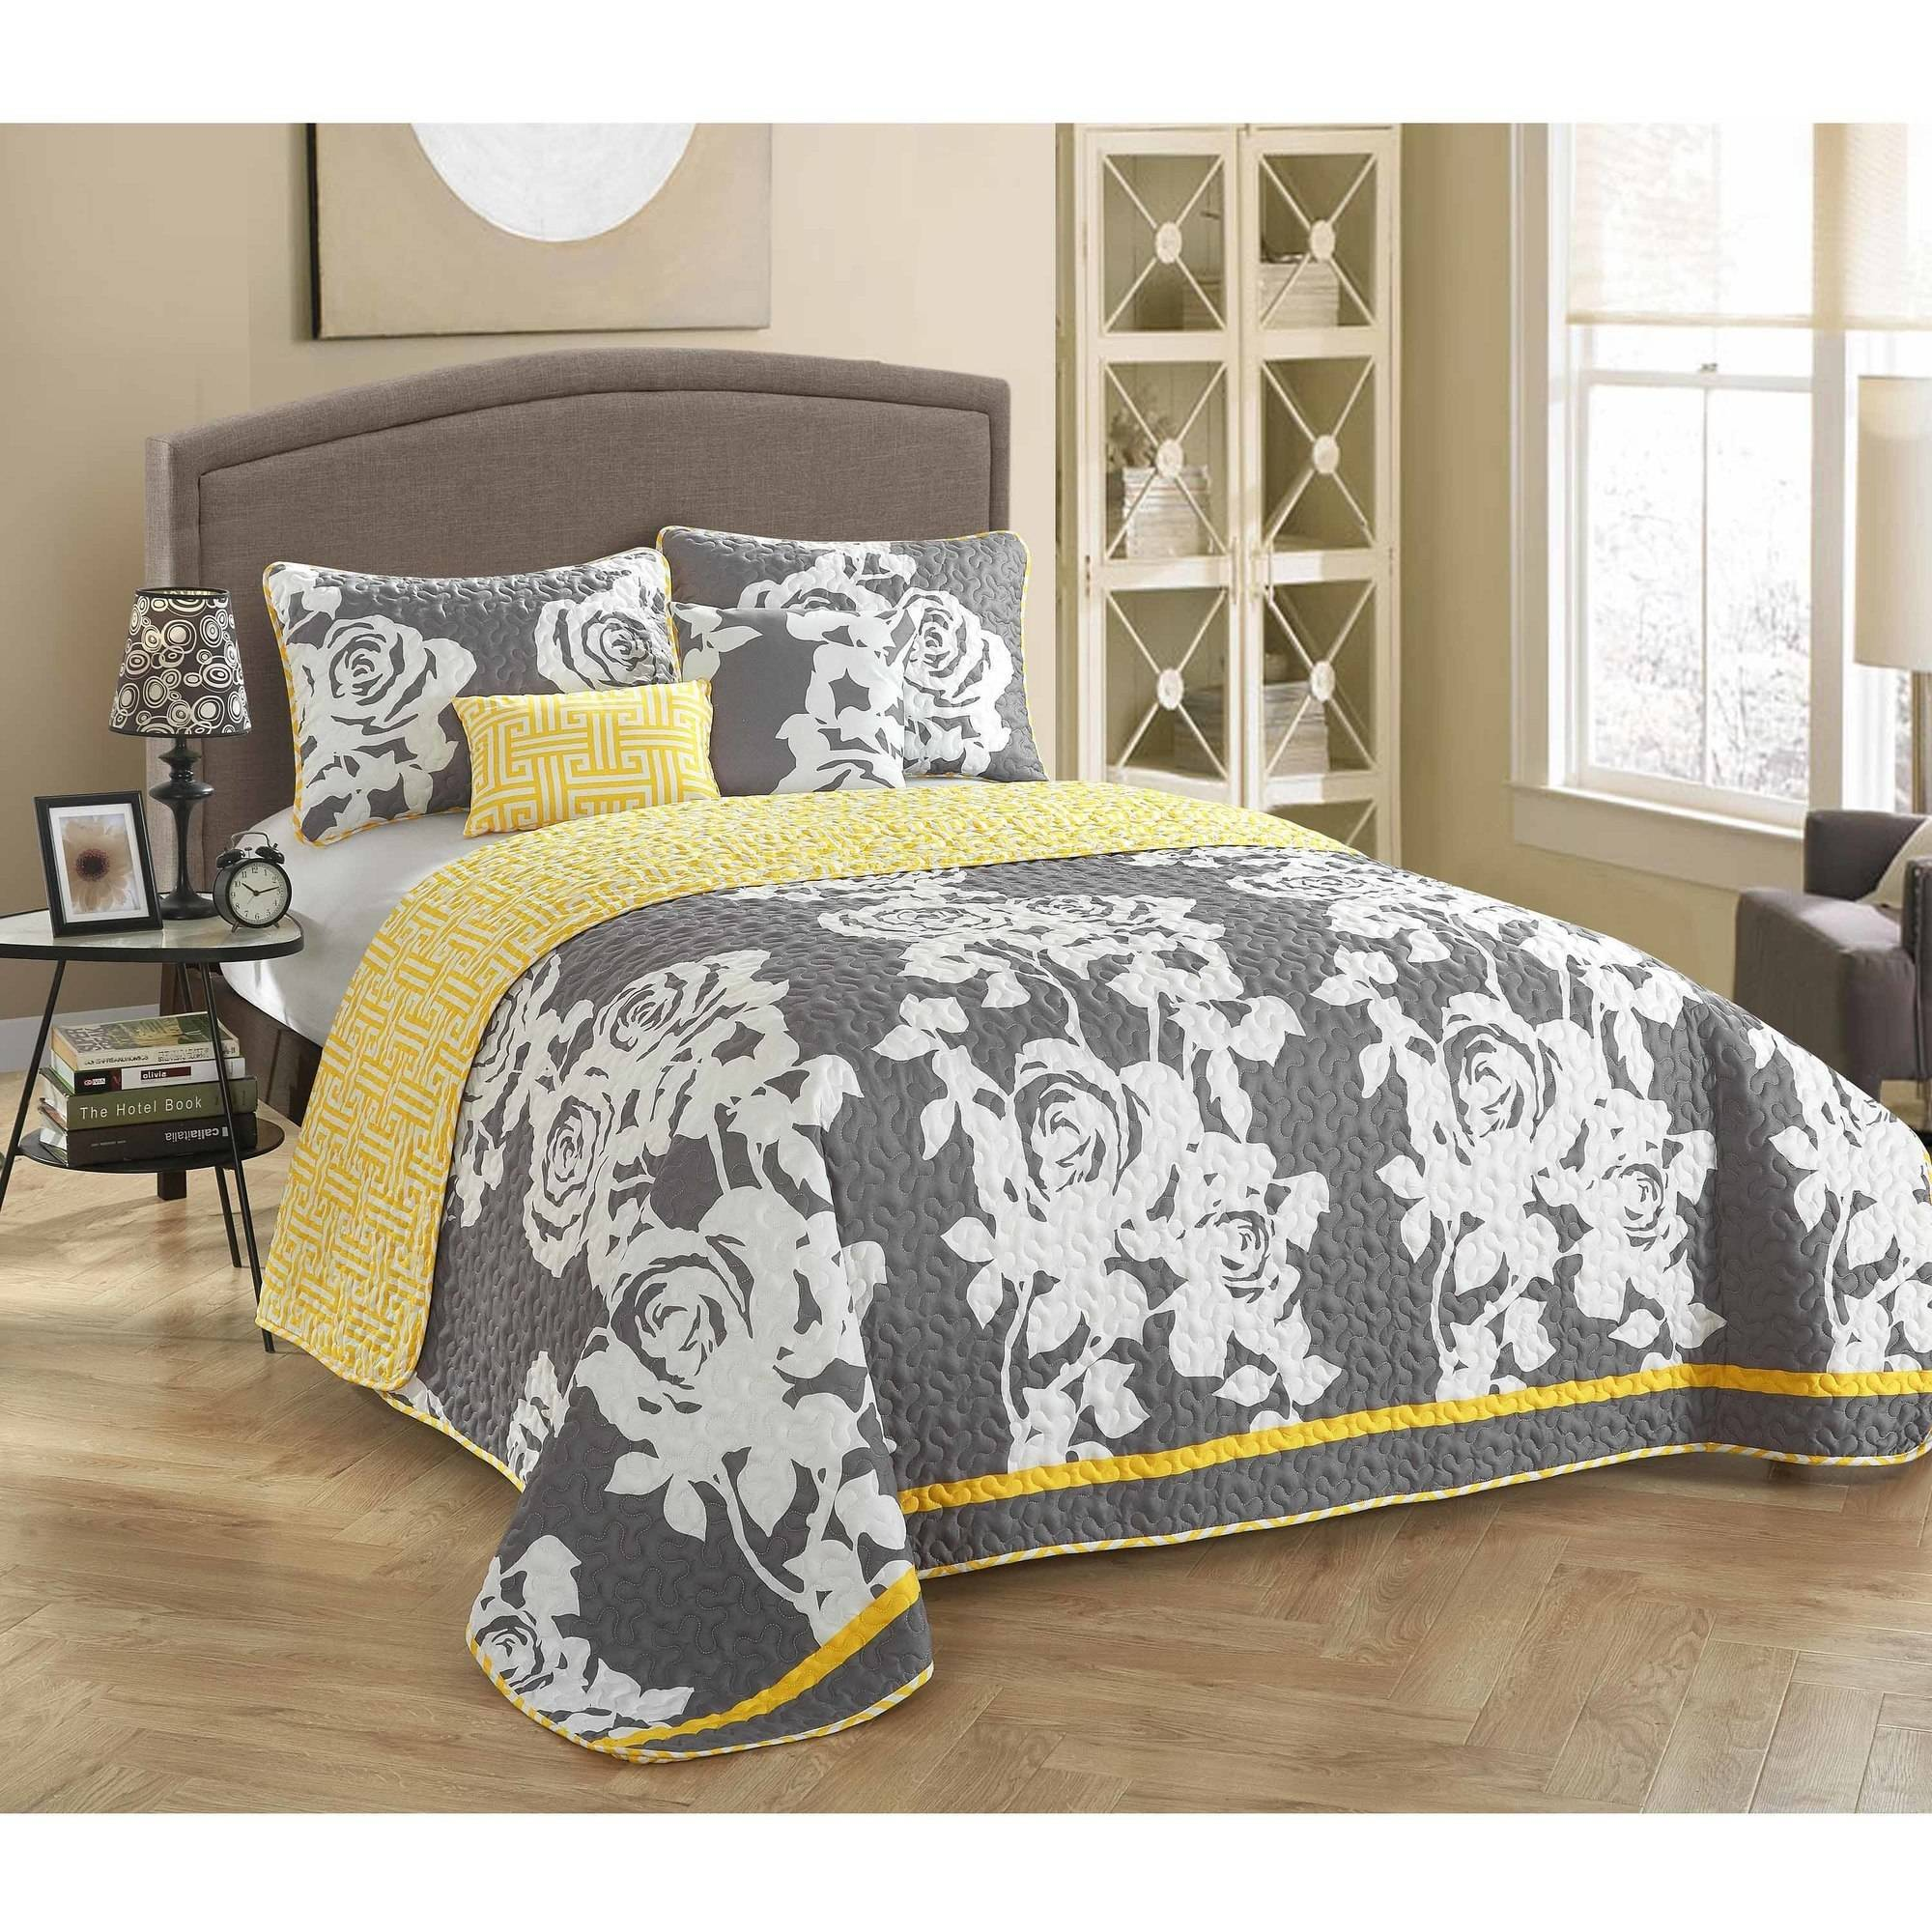 StyleNest SouthBeach Rose 5-Piece Bedding Quilt Set by Idea Nuova